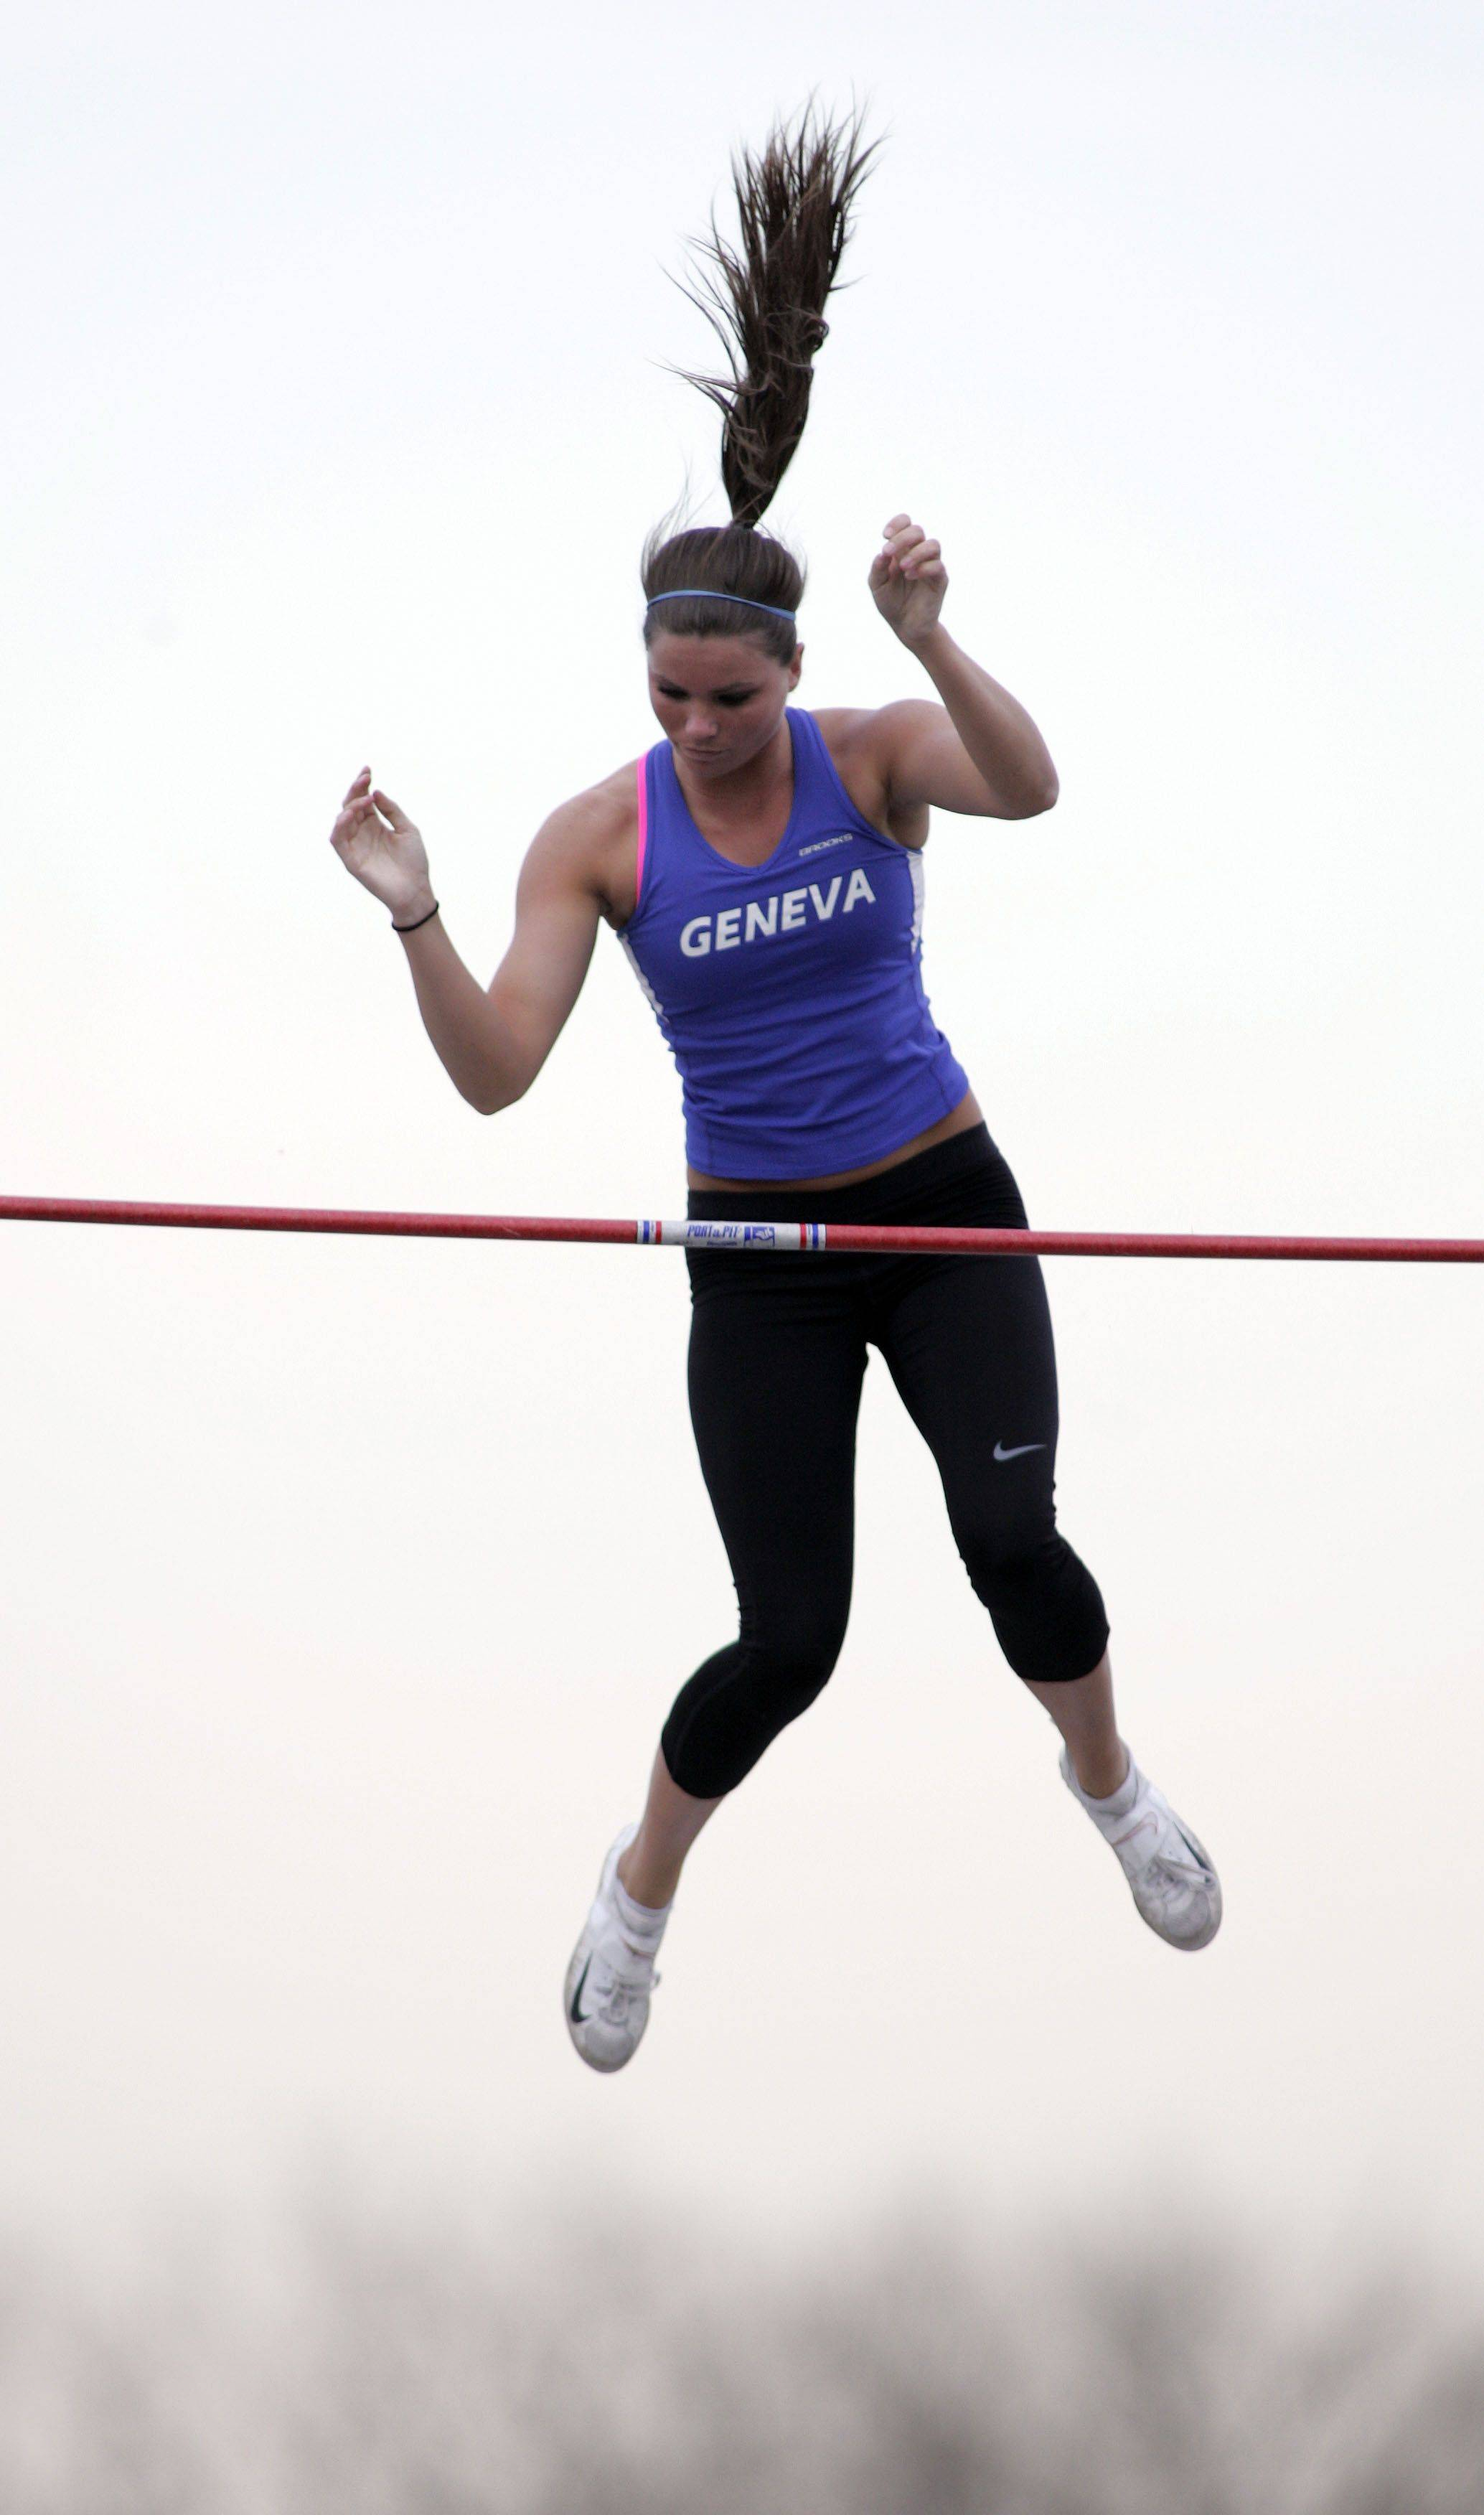 Erin Kluck of Geneva clears the bar in the pole vault during the Girls Kane County Invitational Track and Field Meet Friday.